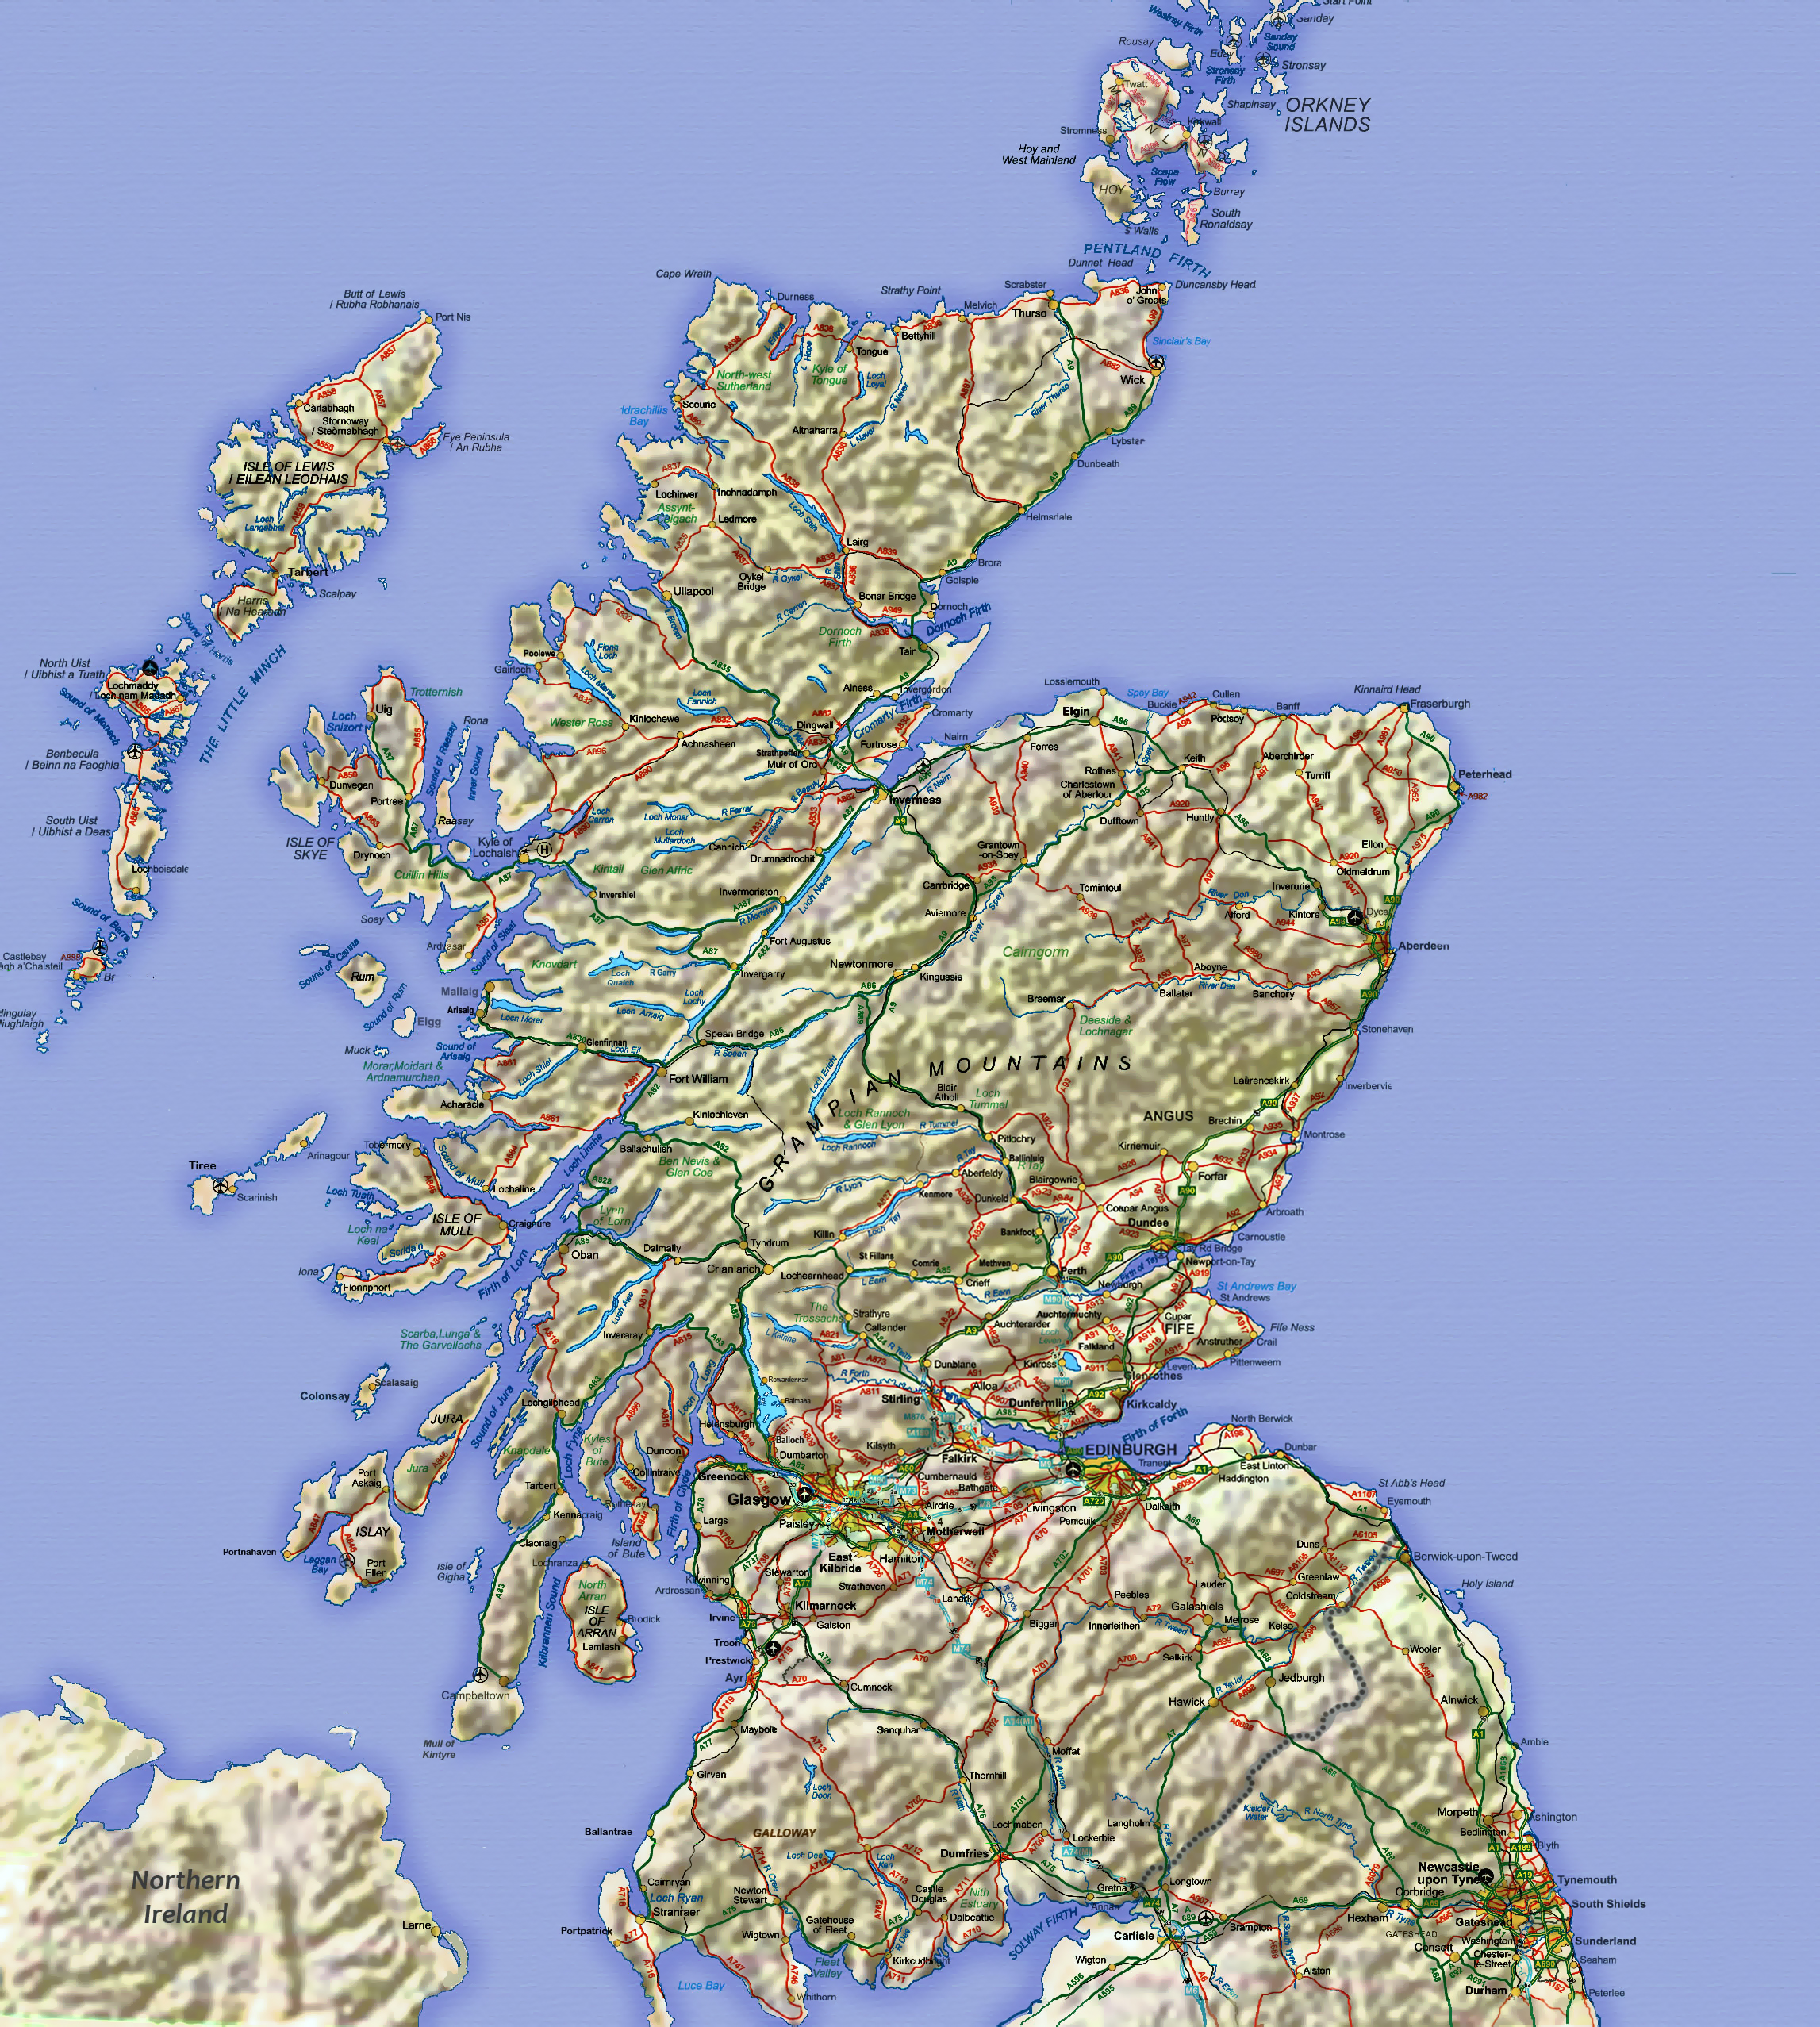 Large map of Scotland with relief, roads, major cities and ... on map of jordan with cities, map of cyprus with cities, map of belarus with cities, map of uganda with cities, map of oman with cities, detailed map of scotland showing all cities, map of qatar with cities, map of lebanon with cities, map of vanuatu with cities, map of ethiopia with cities, map of mozambique with cities, map of luxembourg with cities, map of aruba with cities, map of germany with cities, map of northern europe with cities, map of singapore with cities, map of ancient rome with cities, map of rwanda with cities, map of fiji with cities, map of persia with cities,